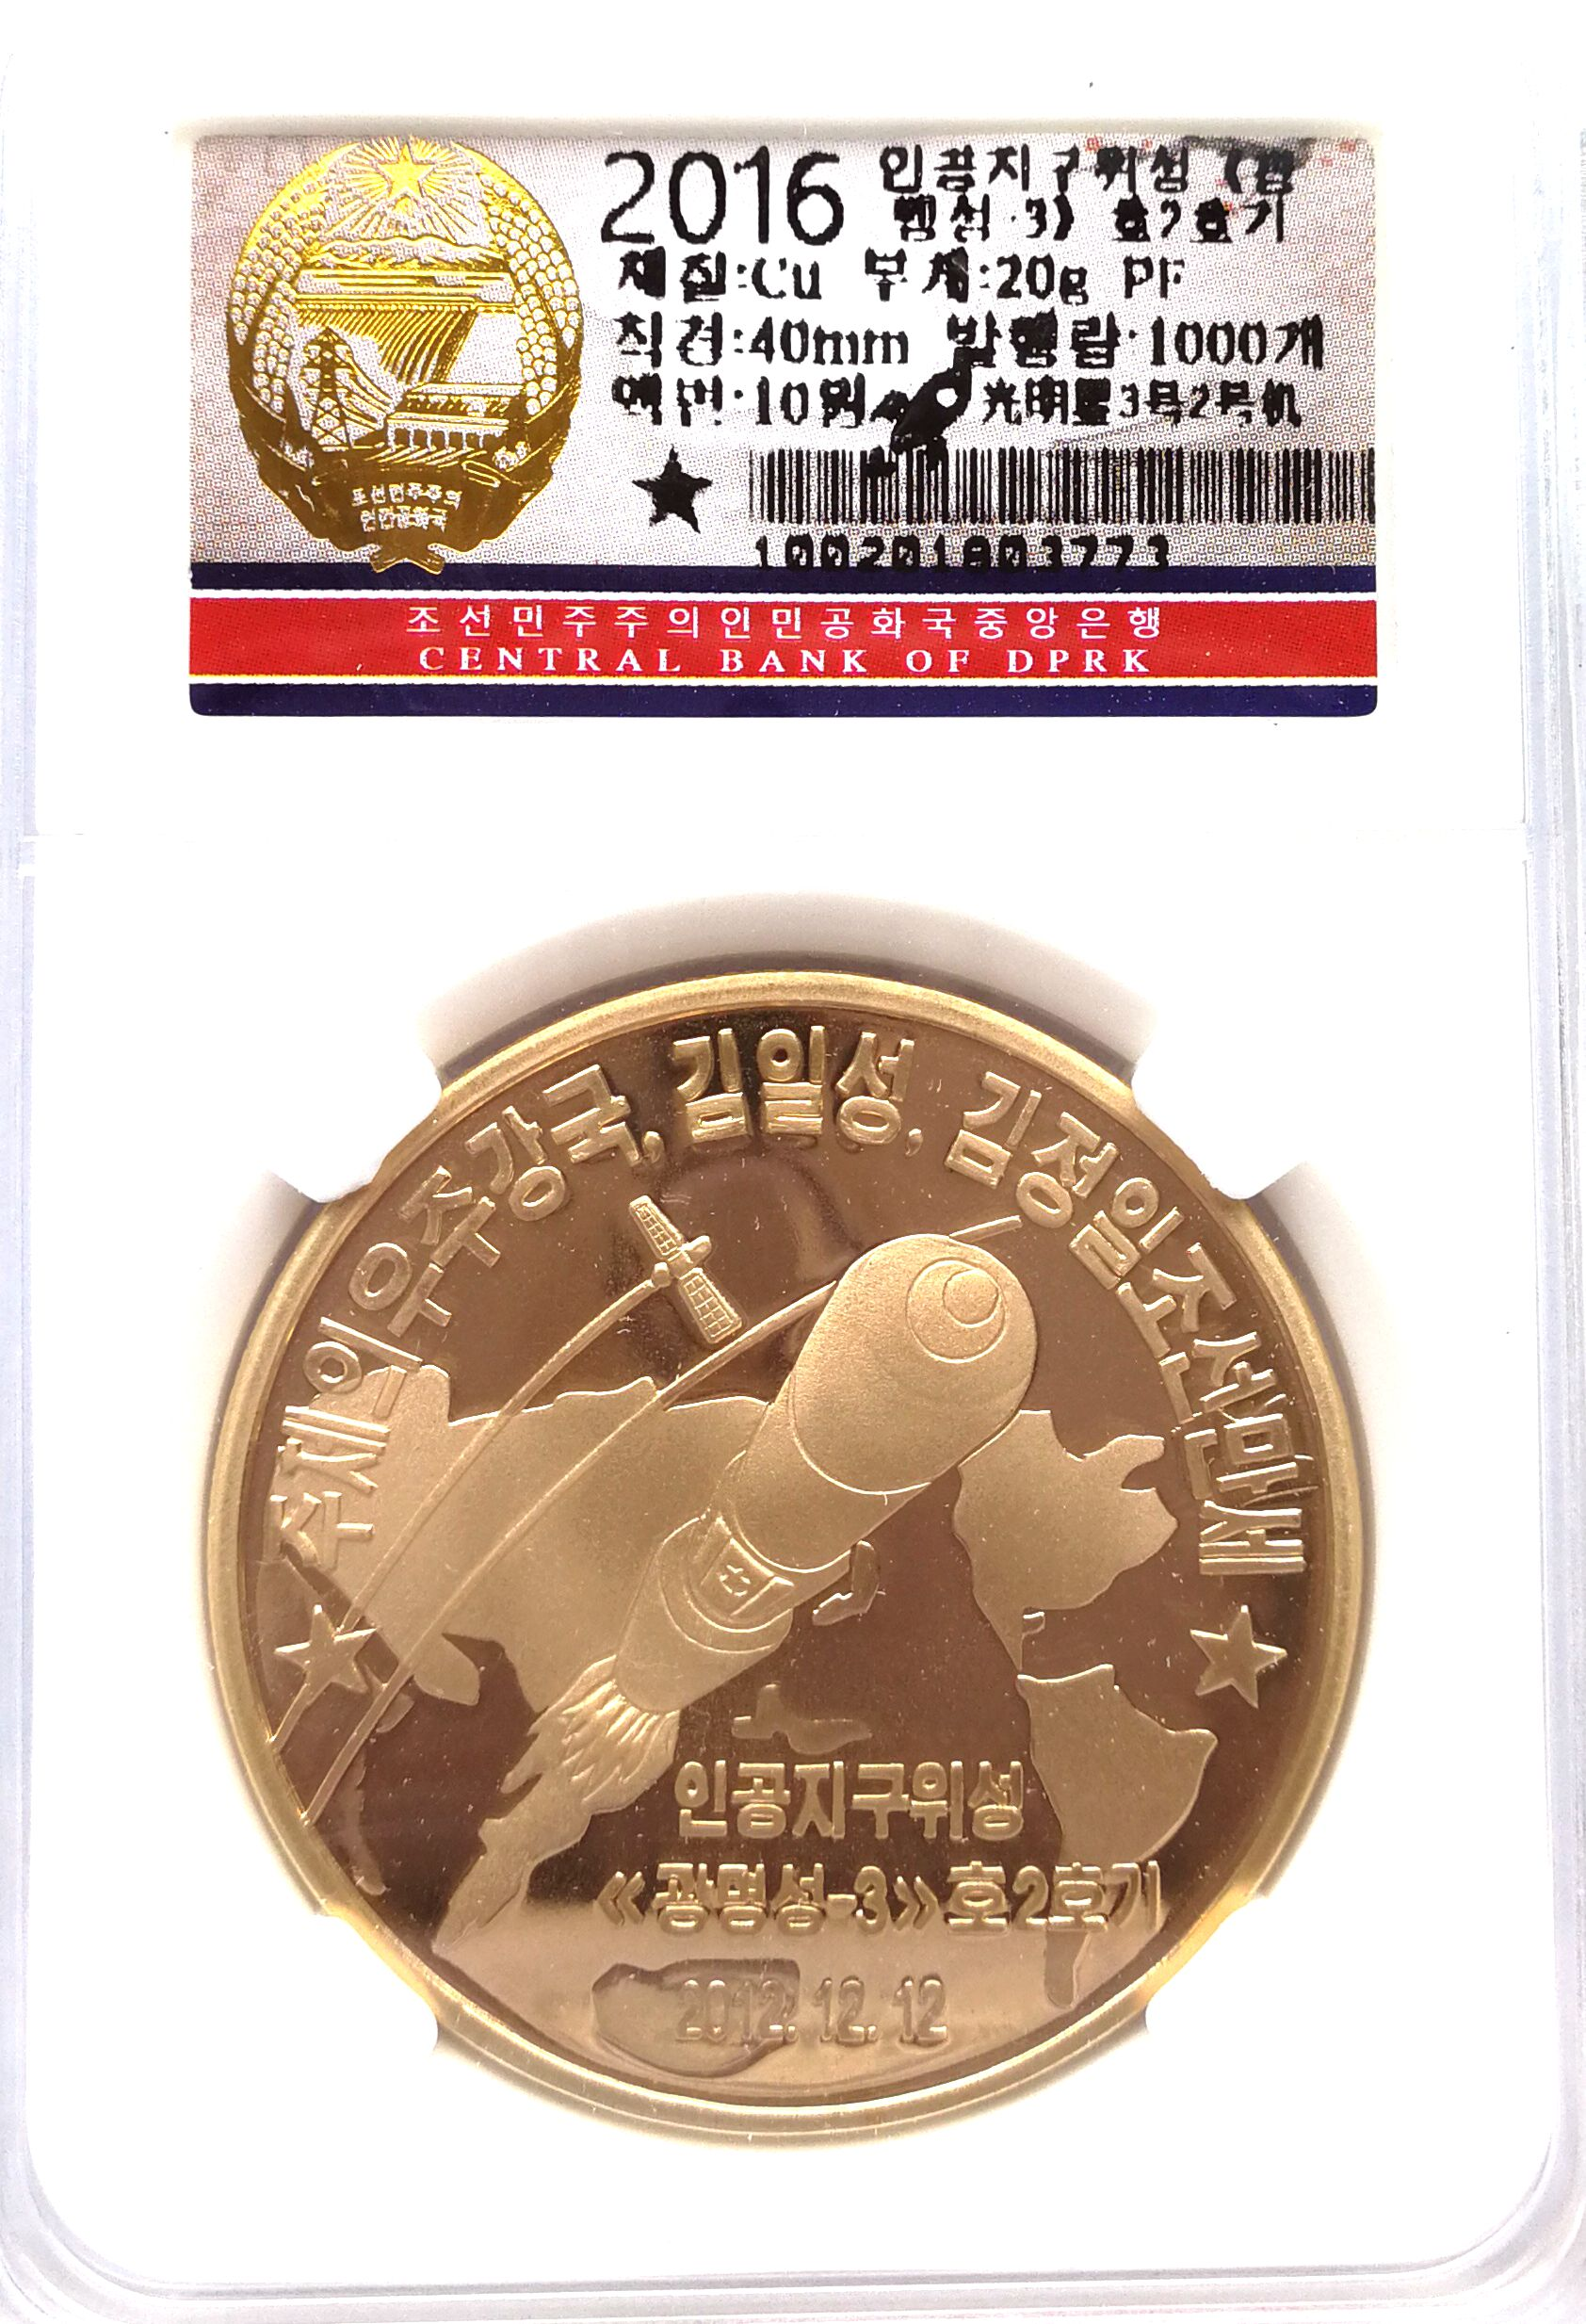 "L3302, Korea Proof Coin ""Kwangmyongsong-3 Rocket Missile"" 2016 Bronze, Korean Grade"